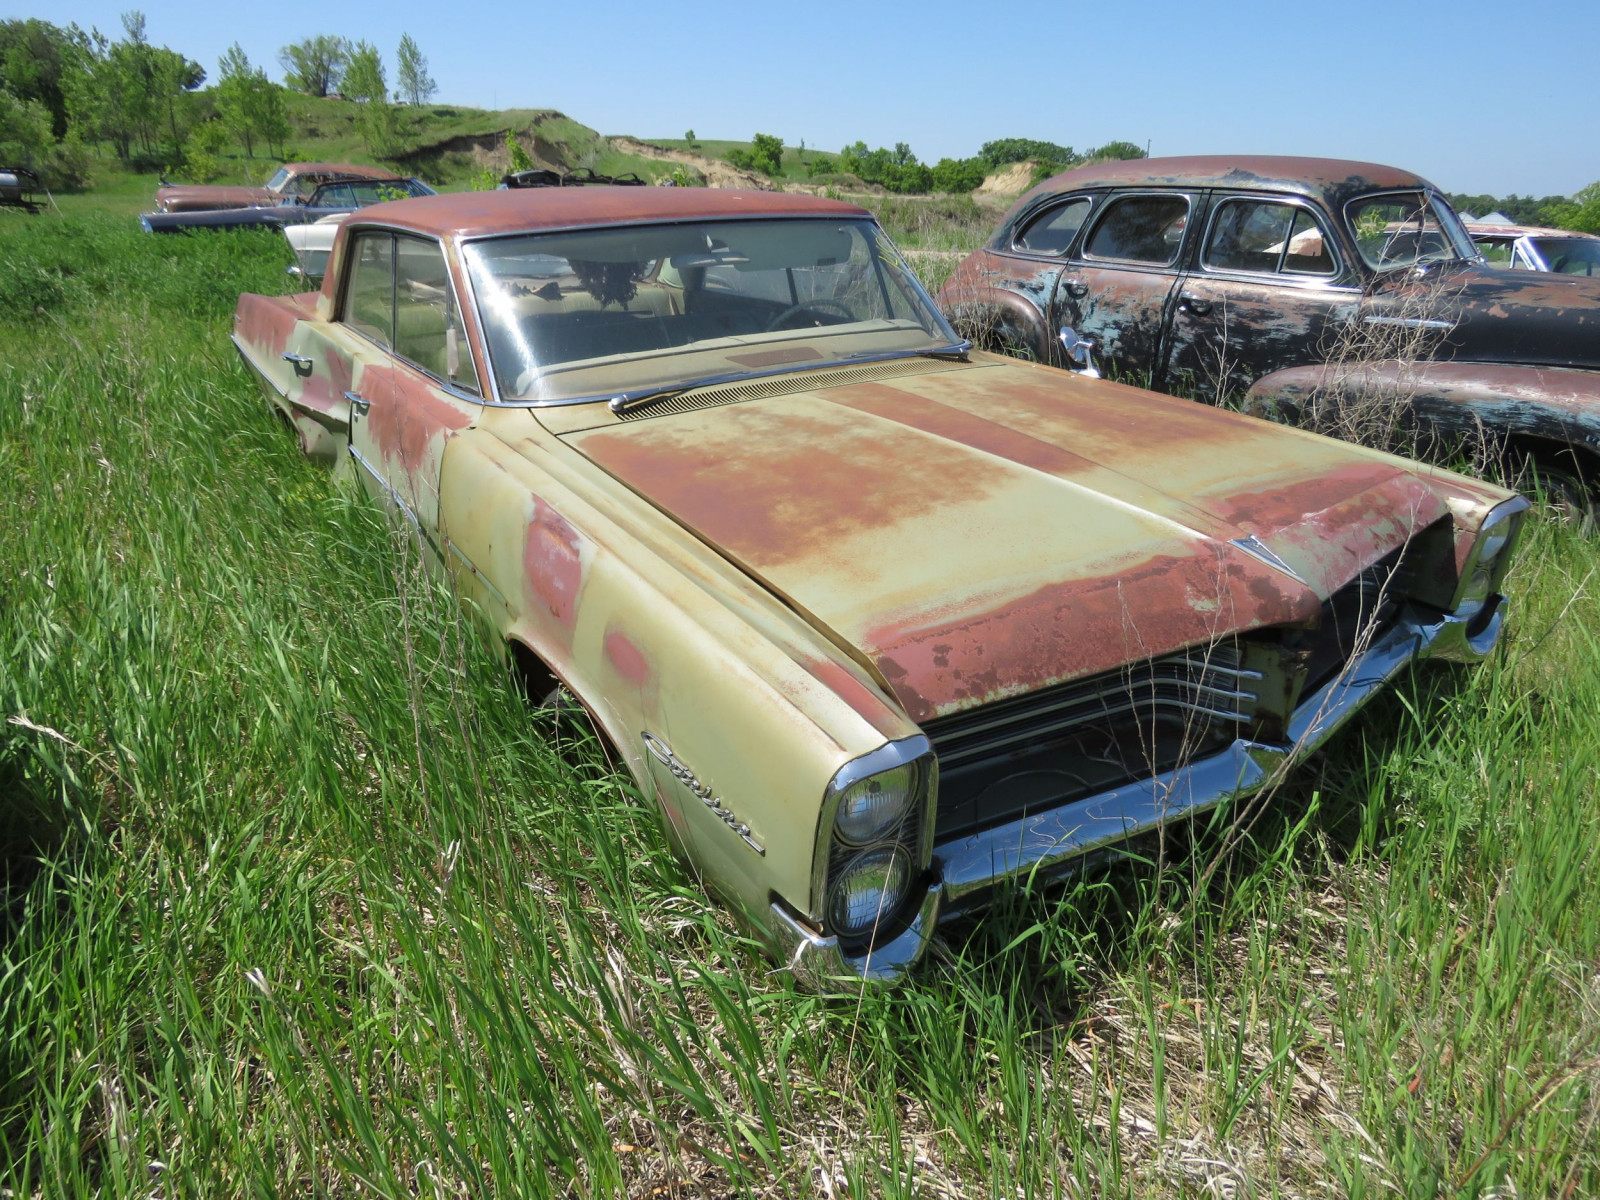 1964 Pontiac Catalina 4dr Sedan for Project or parts - Image 3